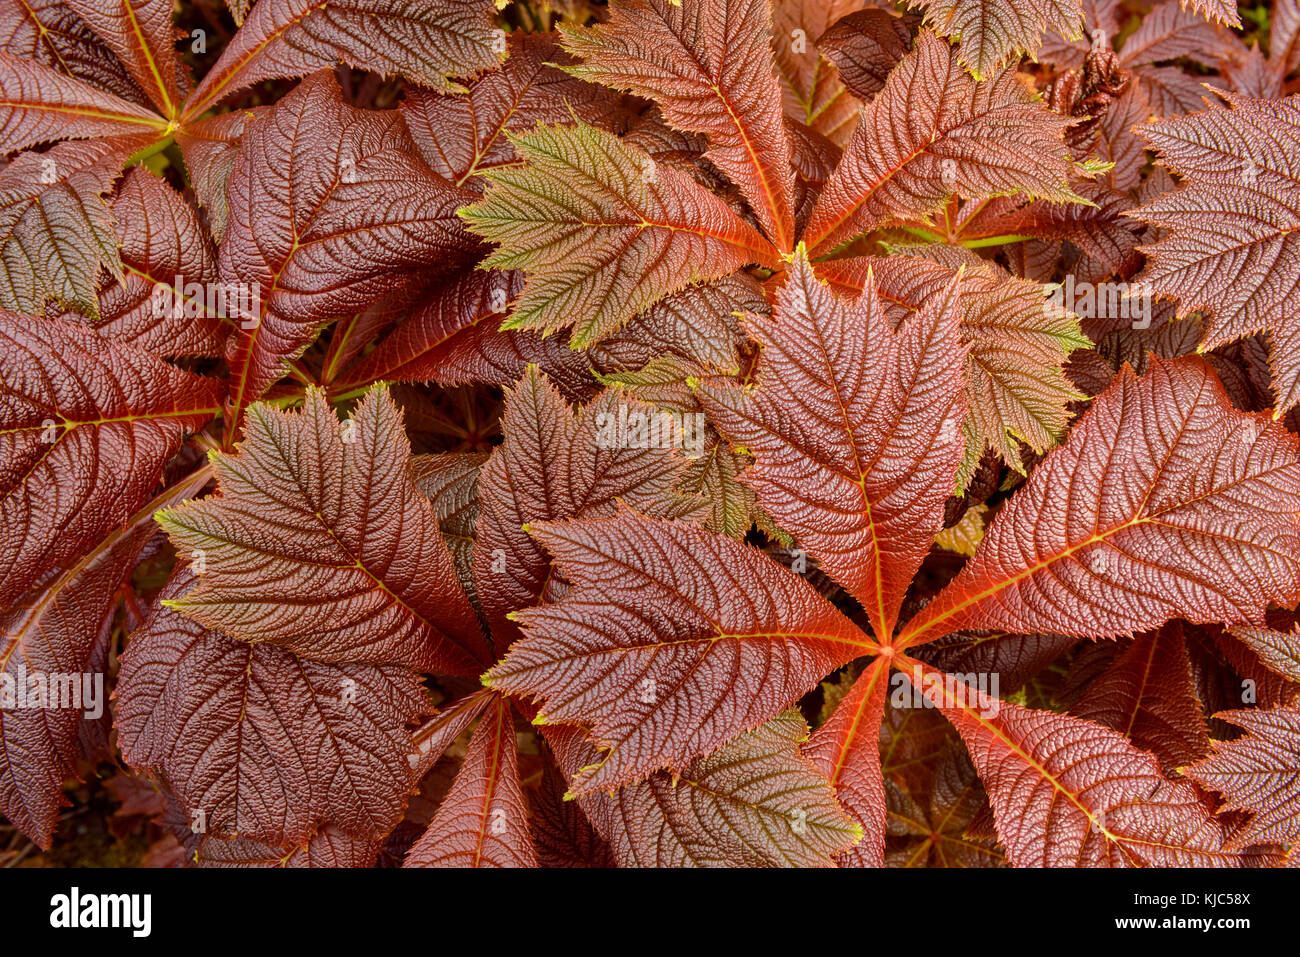 Close-up of Giant saxifragaceae (Rodgersia podophylla) plant in Dunvegan on the Isle of Skye, Scotland - Stock Image